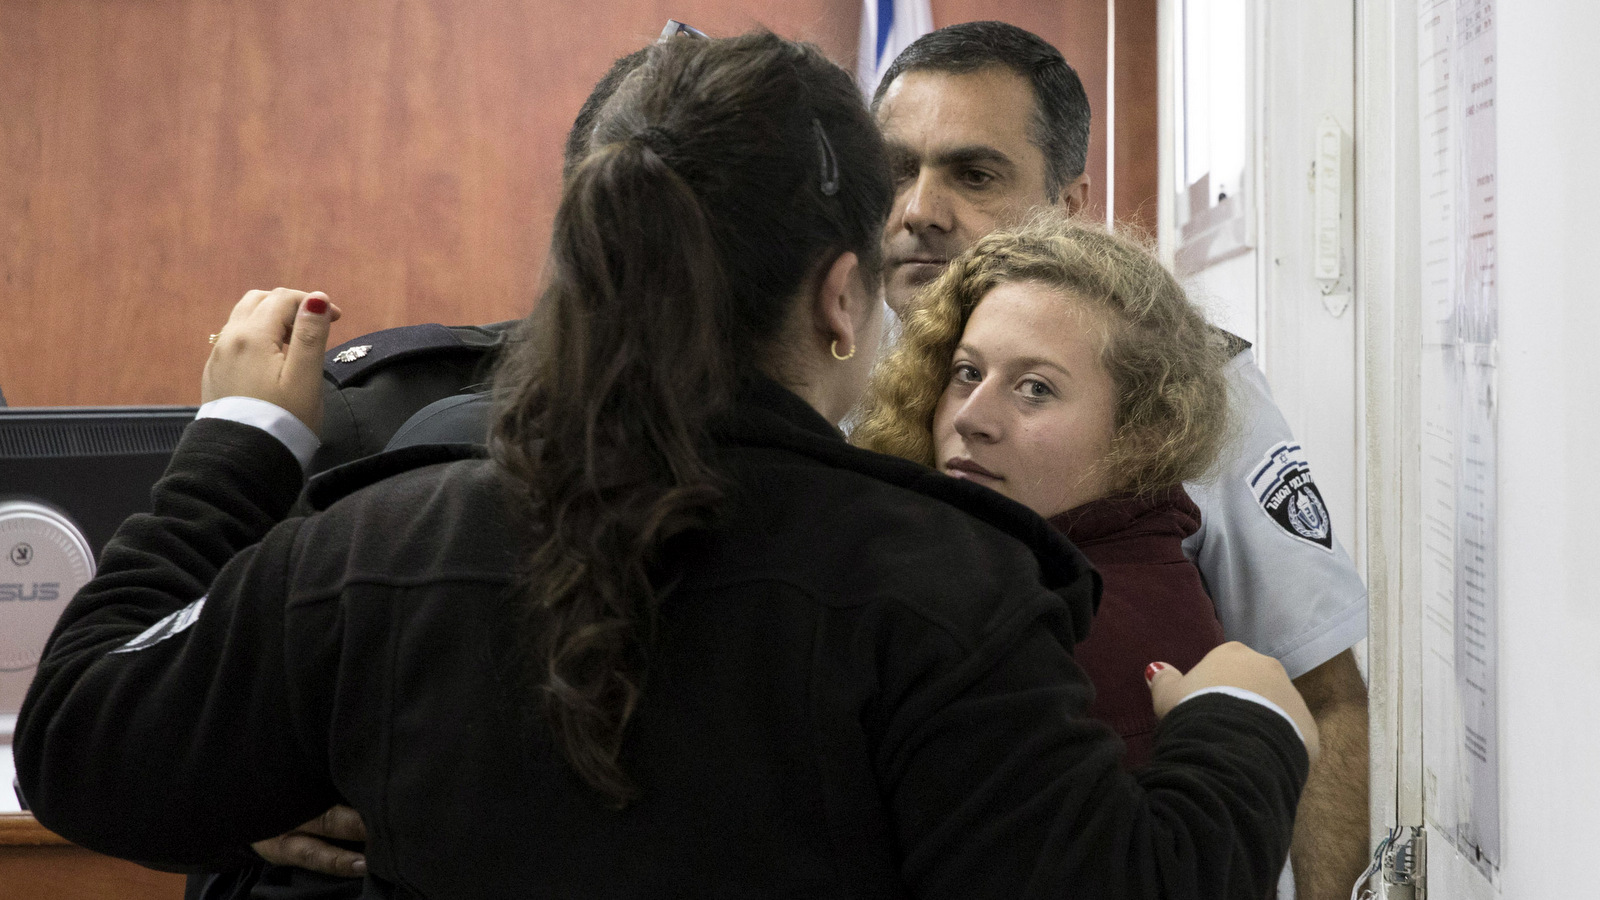 Ahed Tamimi Is escorted to a military court near occupied Jerusalem, Dec. 20, 2017. (AP/Oren Ziv)